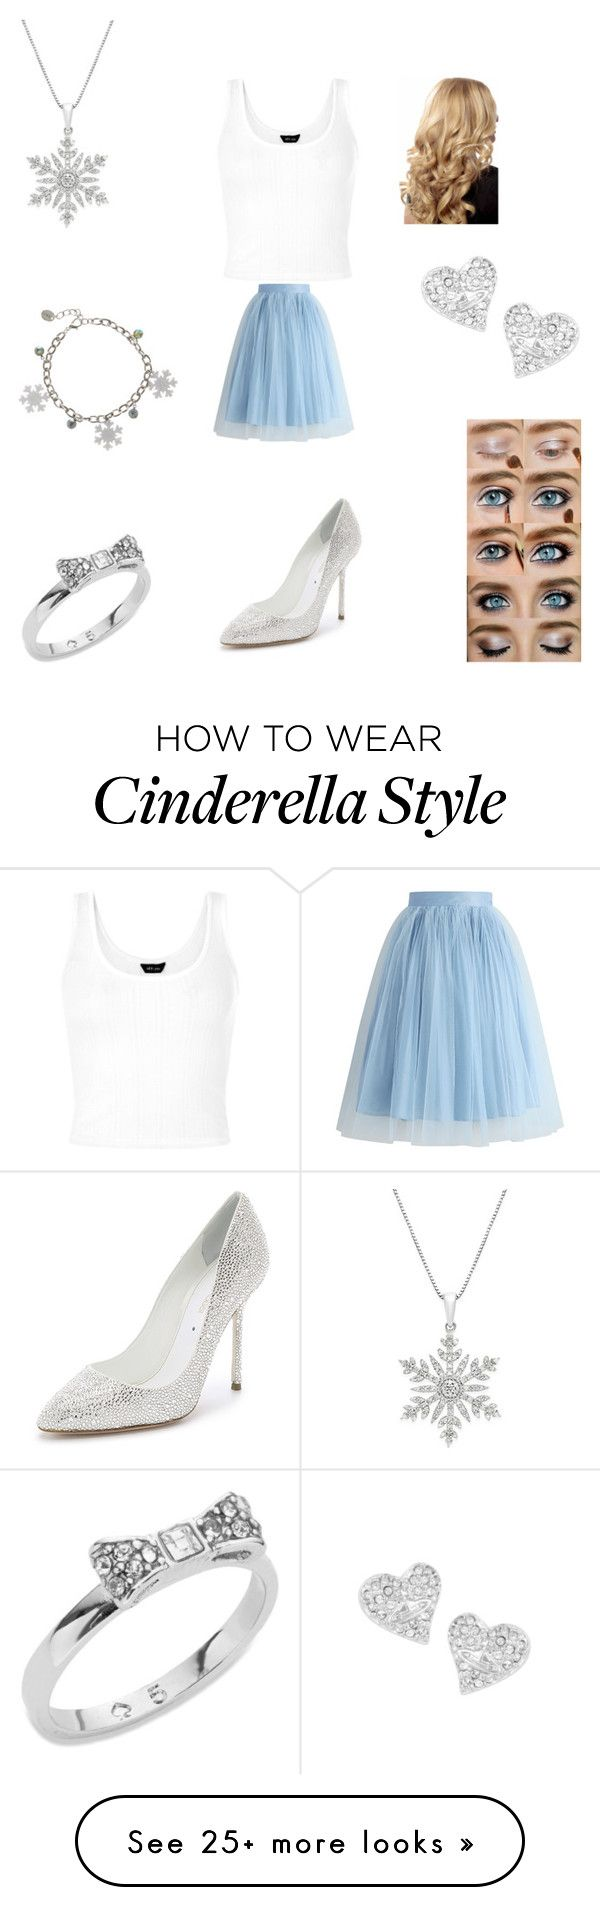 """Modern Cinderella"" by misty-rebellion on Polyvore featuring Chicwish, Sergio Rossi, Vivienne Westwood, Kate Spade and modern"